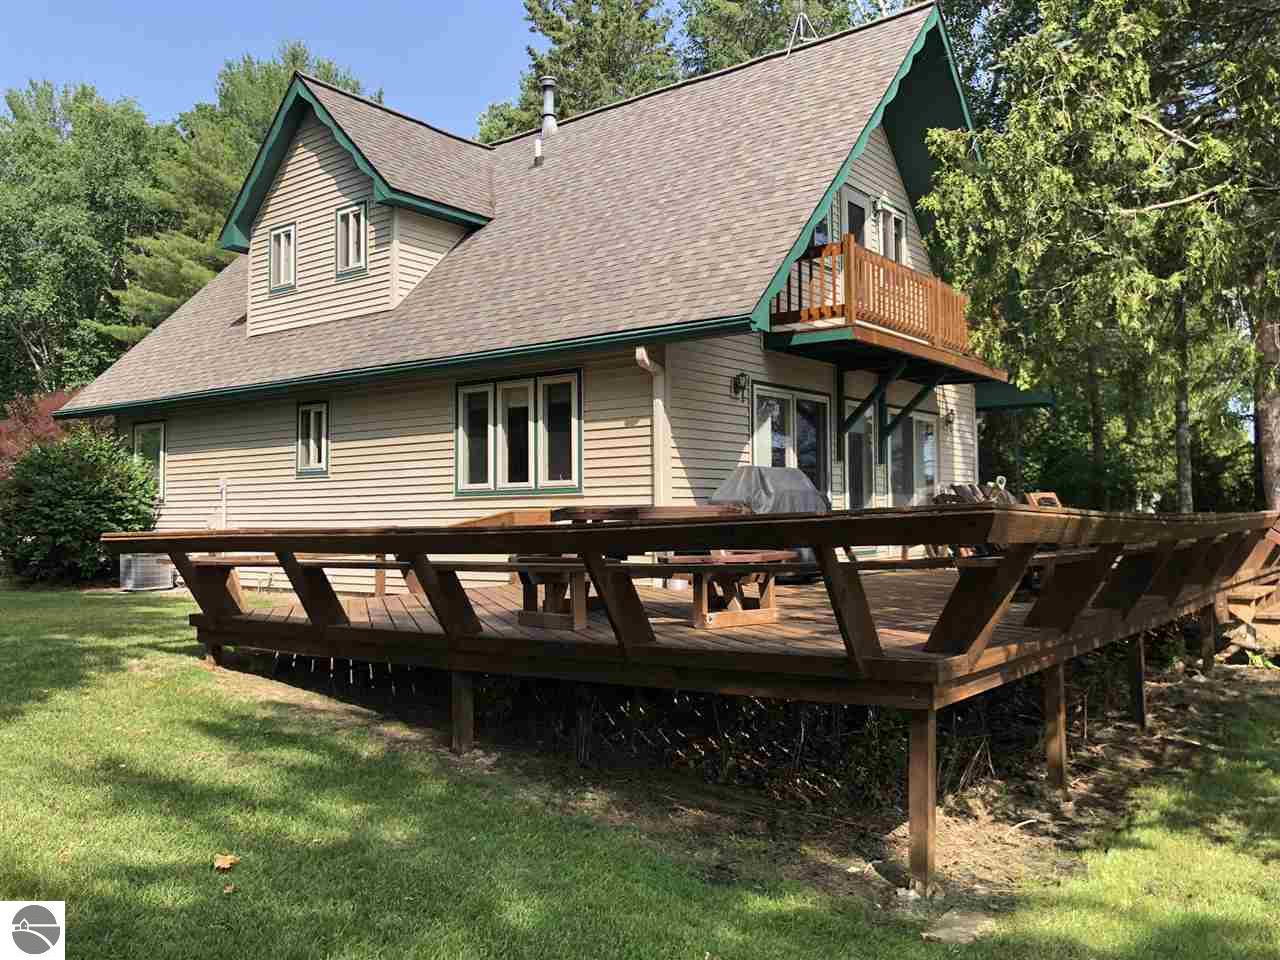 Torch Lake Homes for Sale: Torch Lake Waterfront Properties: Kathy